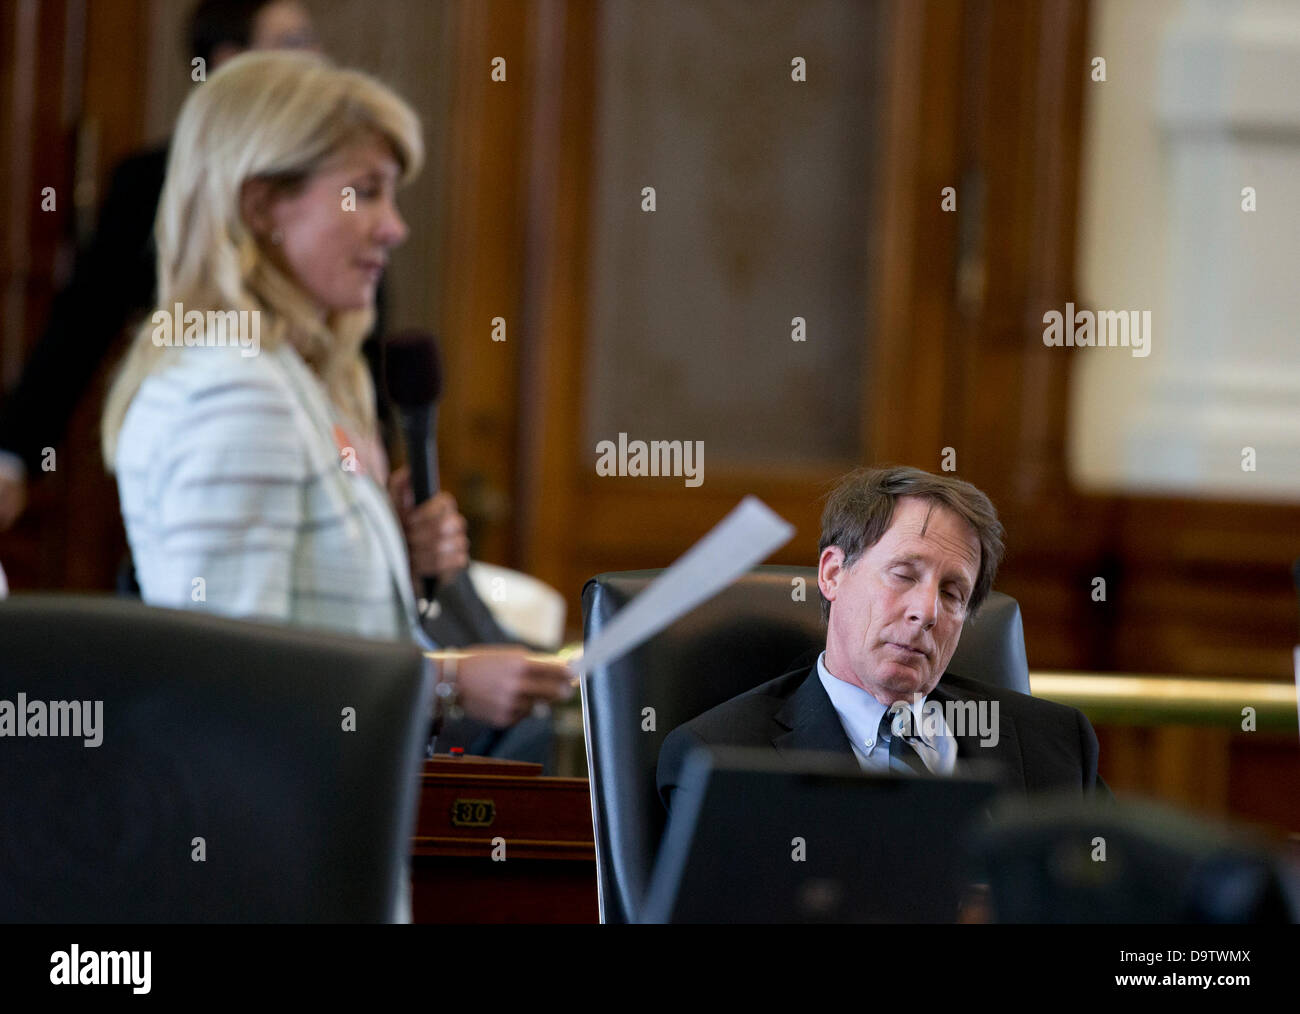 Texas state Sen. Robert Duncan snoozes as Sen. Wendy Davis continues her 11-hour filibuster in the Senate chamber - Stock Image